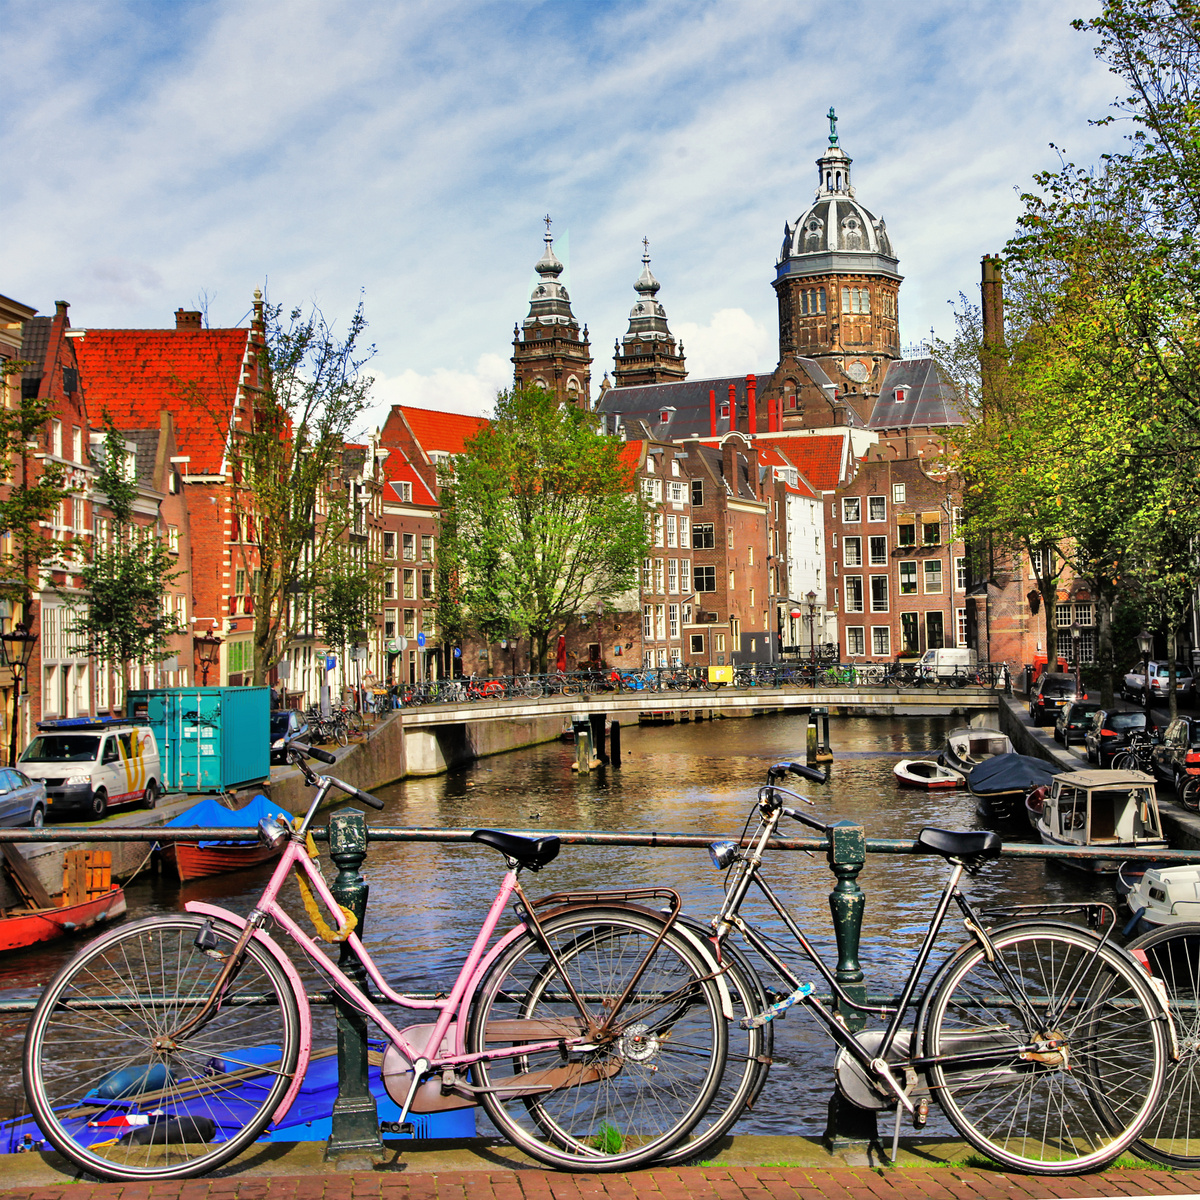 5 Top Reasons Why You Should Study in the Netherlands